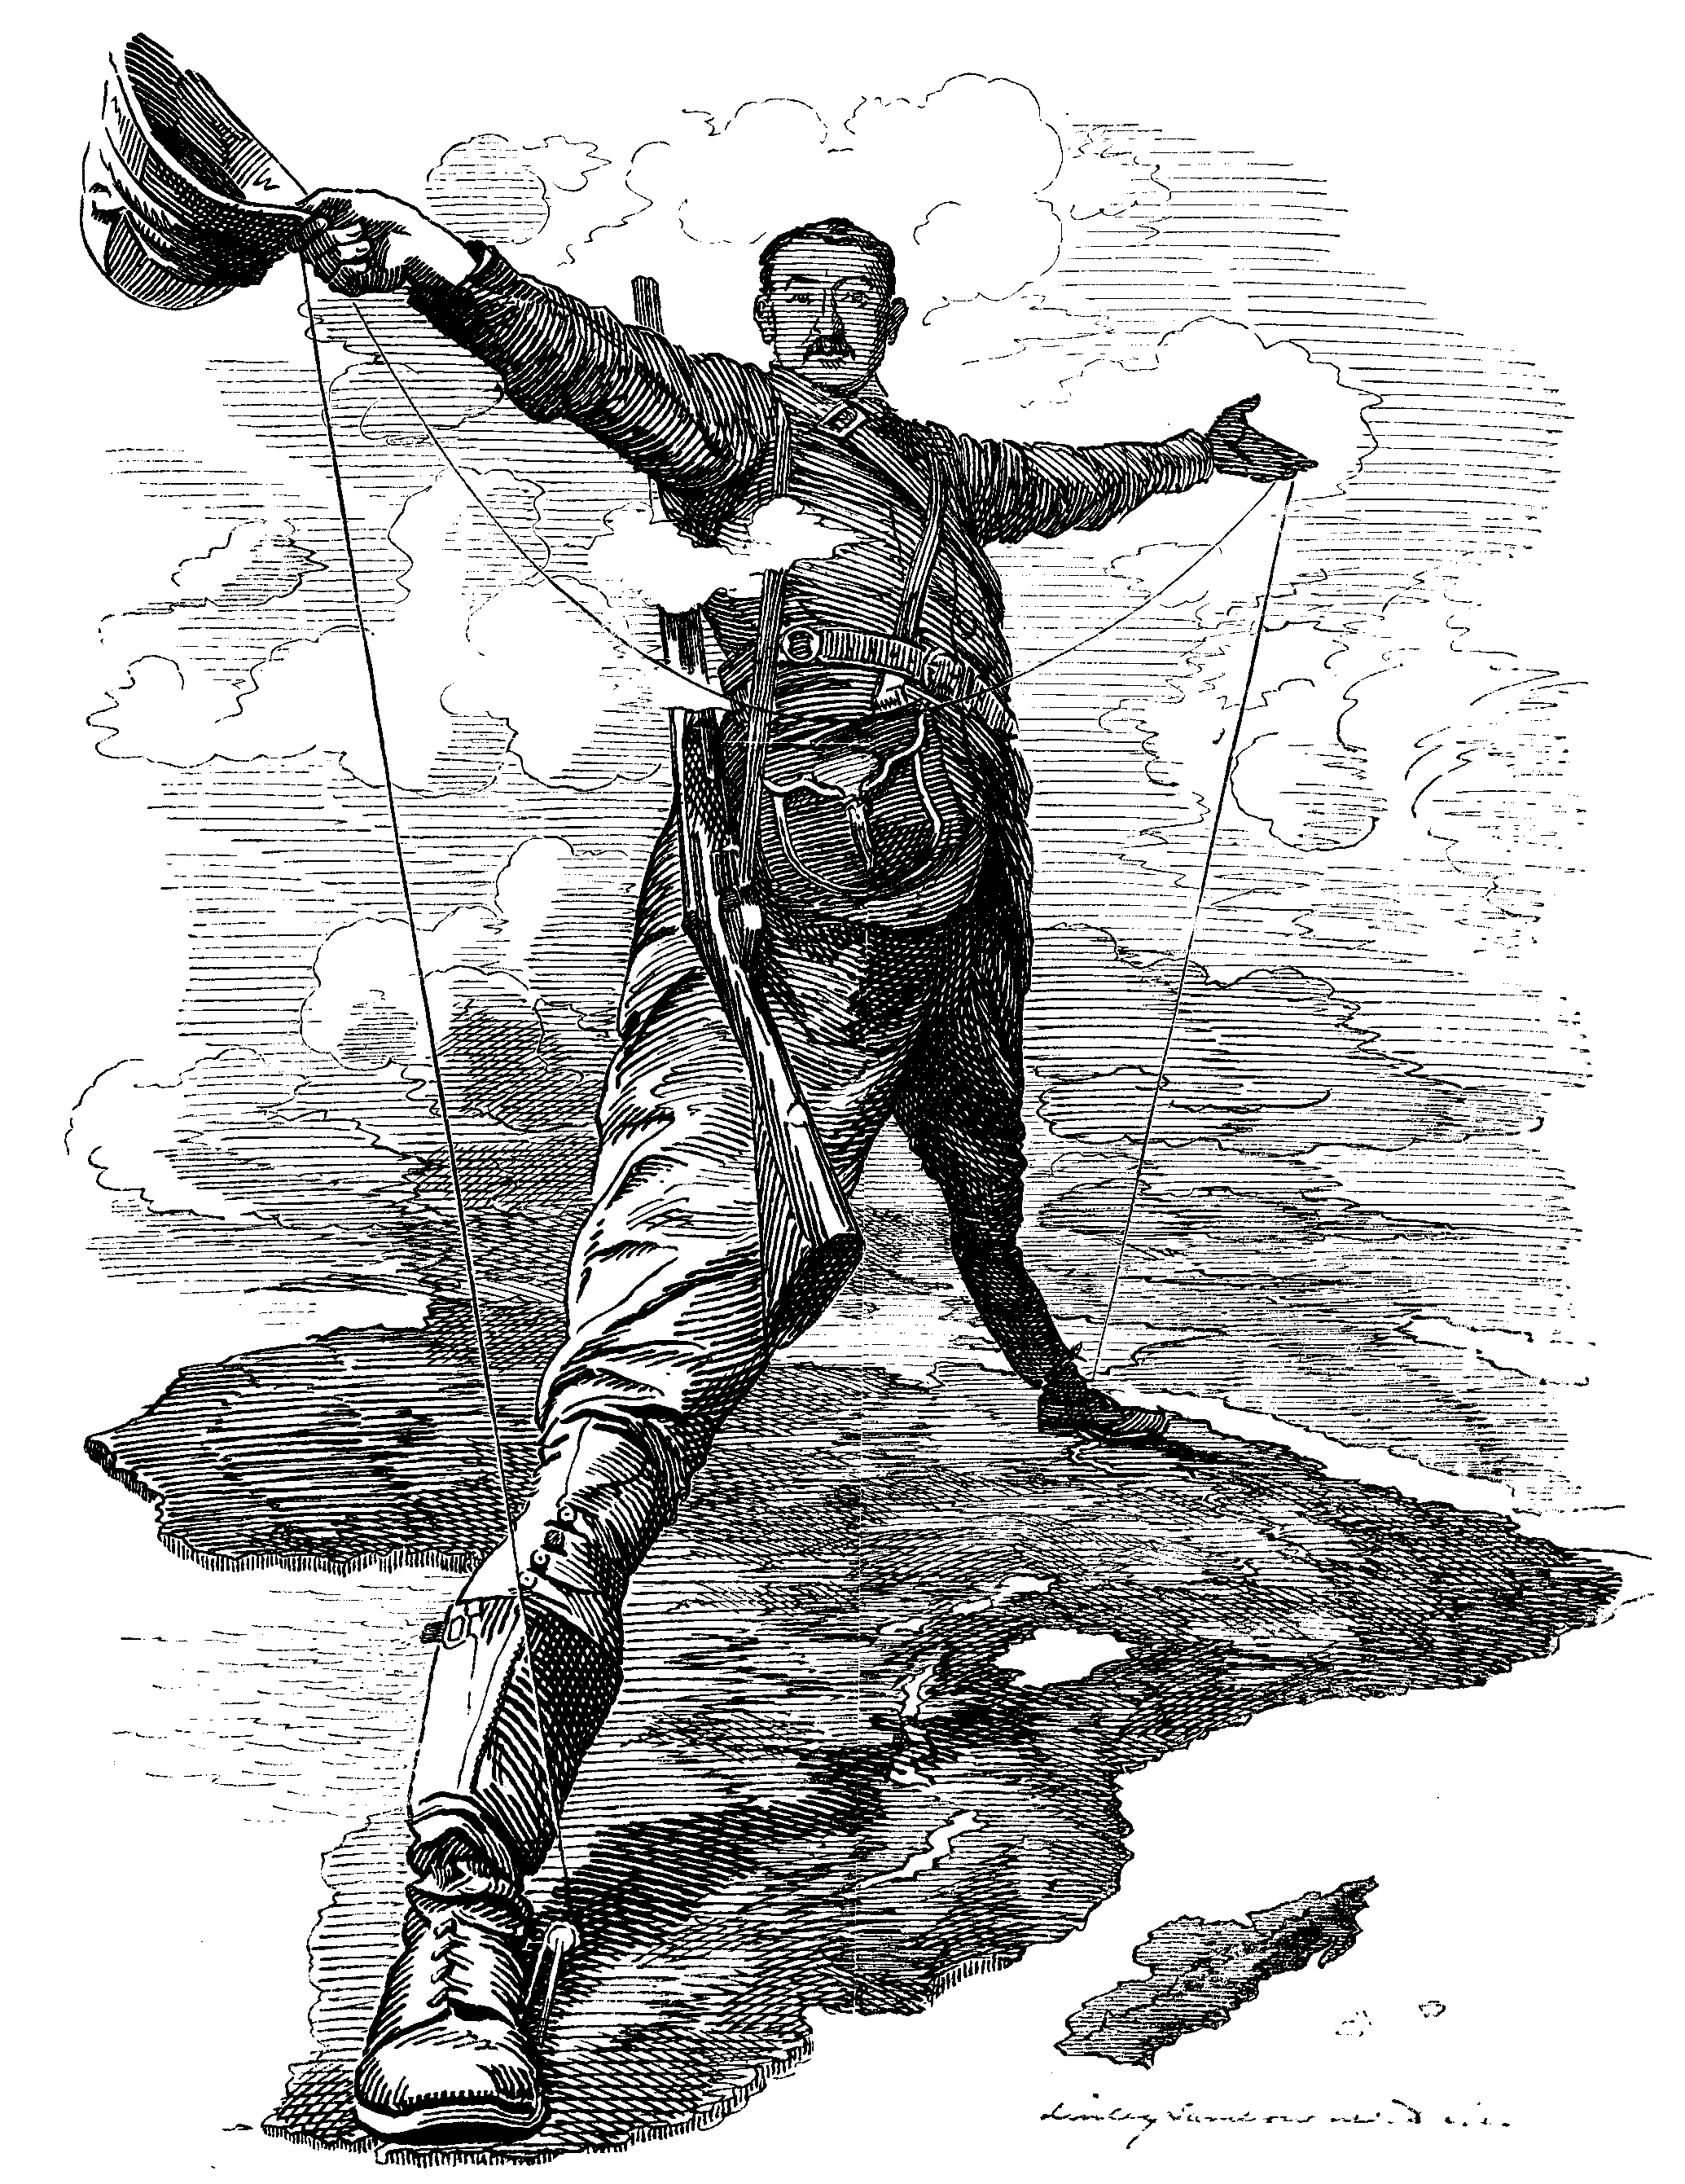 South African Wars 18791915 Wikipedia Electrical Wiring Licence Africa Caricature Of Cecil John Rhodes After He Announced Plans For A Telegraph Line From Cape Town To Cairo